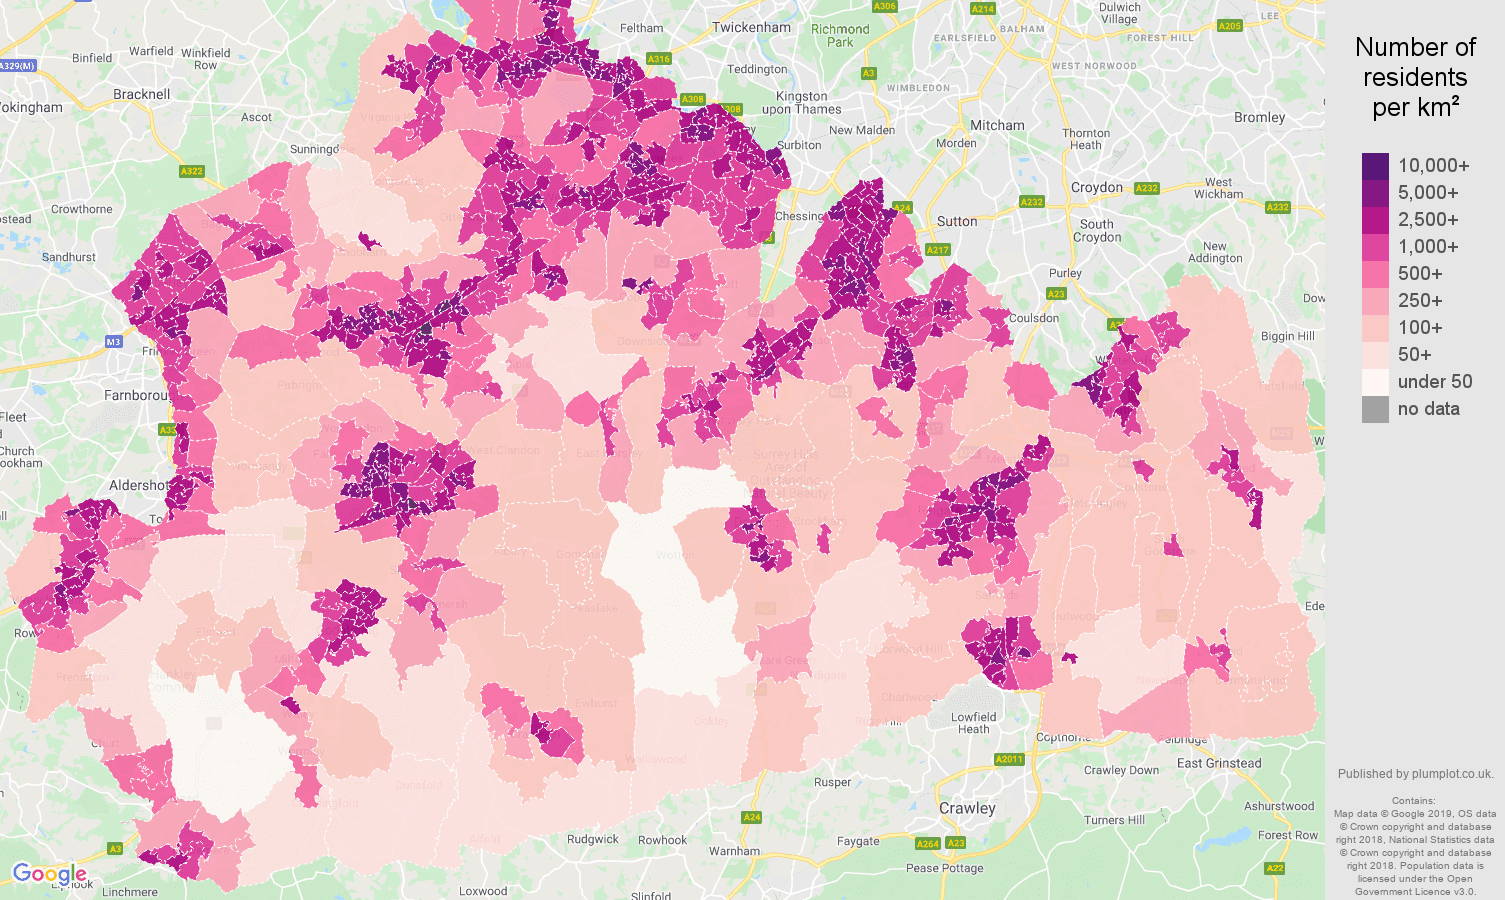 Surrey population density map